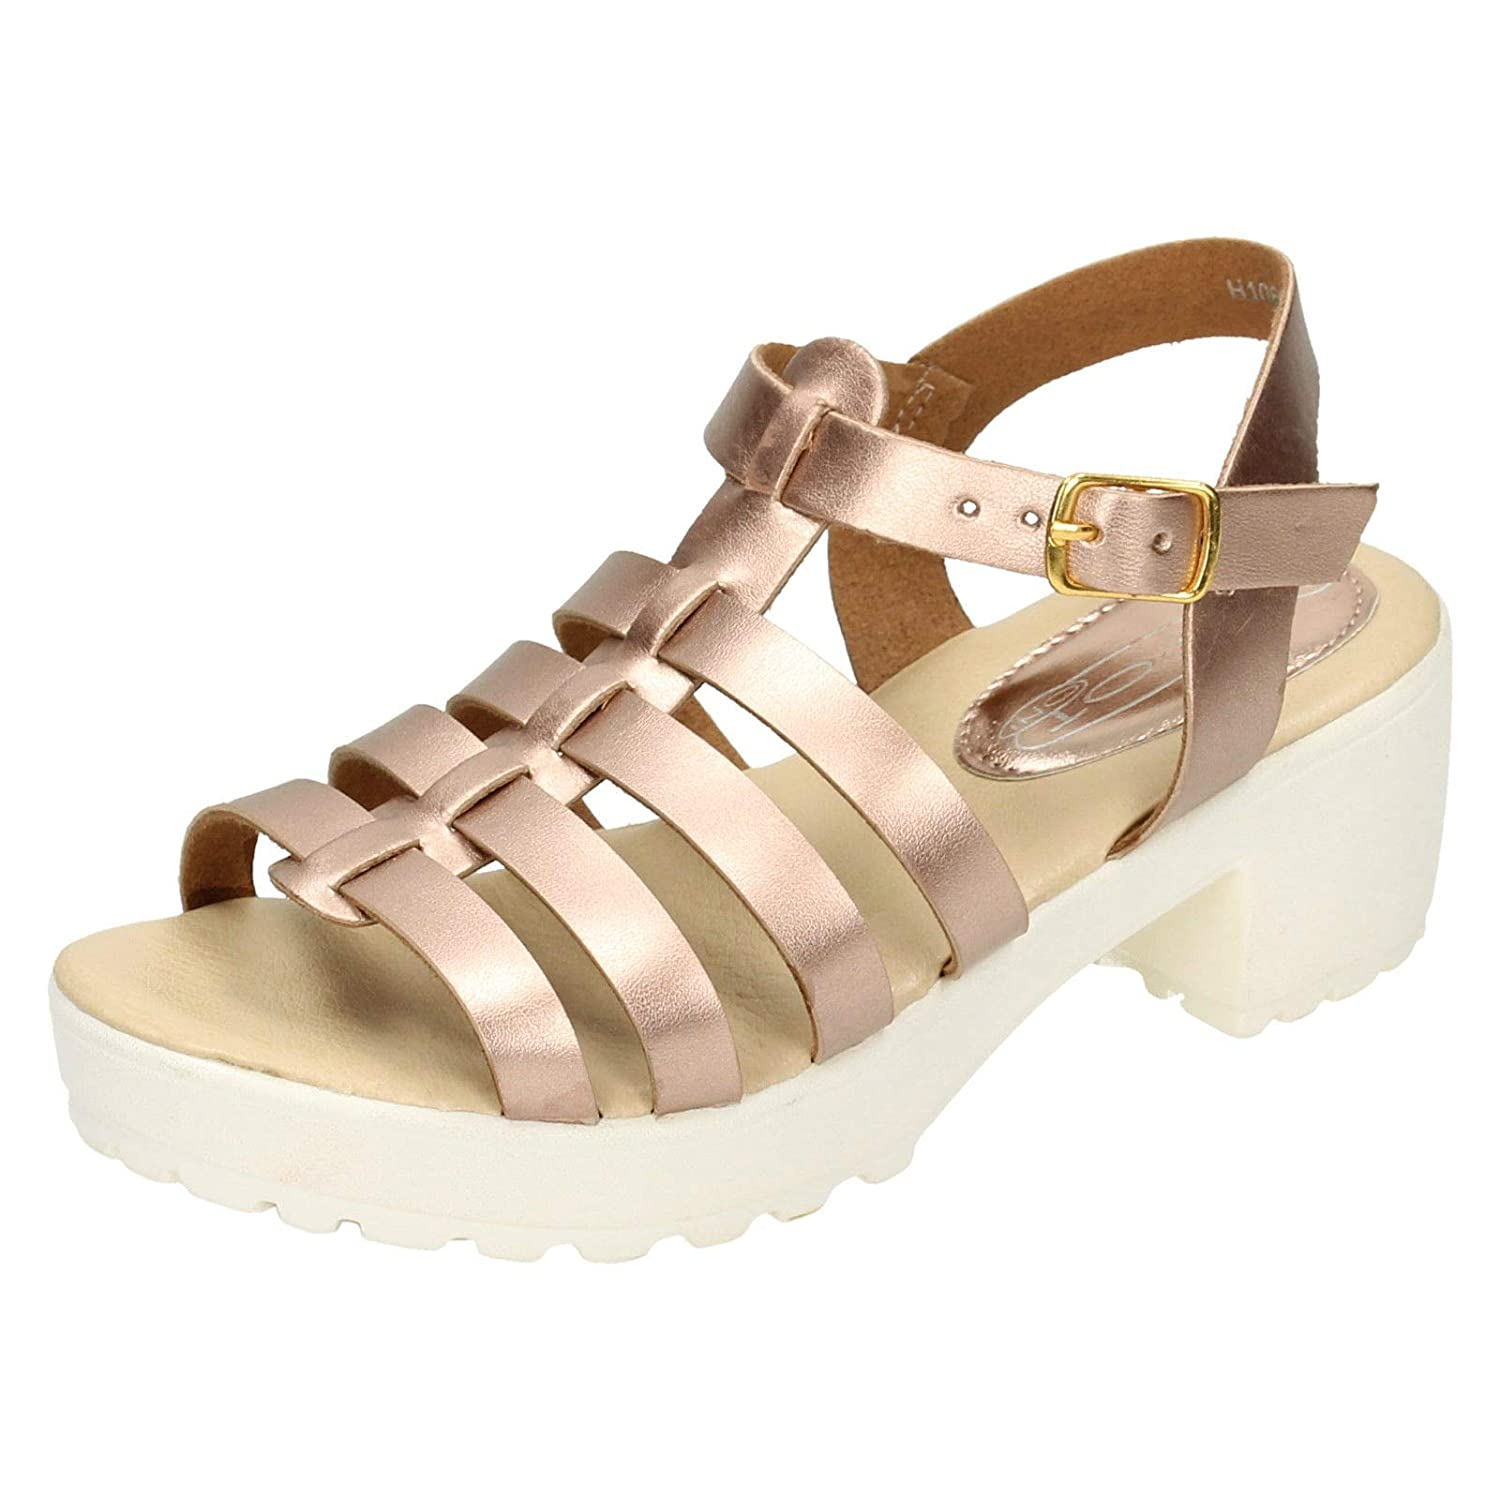 7714e95679 HeelzSoHigh Kids Girls Childrens Rose Gold Strappy Sandals Summer Holiday  Retro Shoes Sizes 10-2: Amazon.co.uk: Shoes & Bags